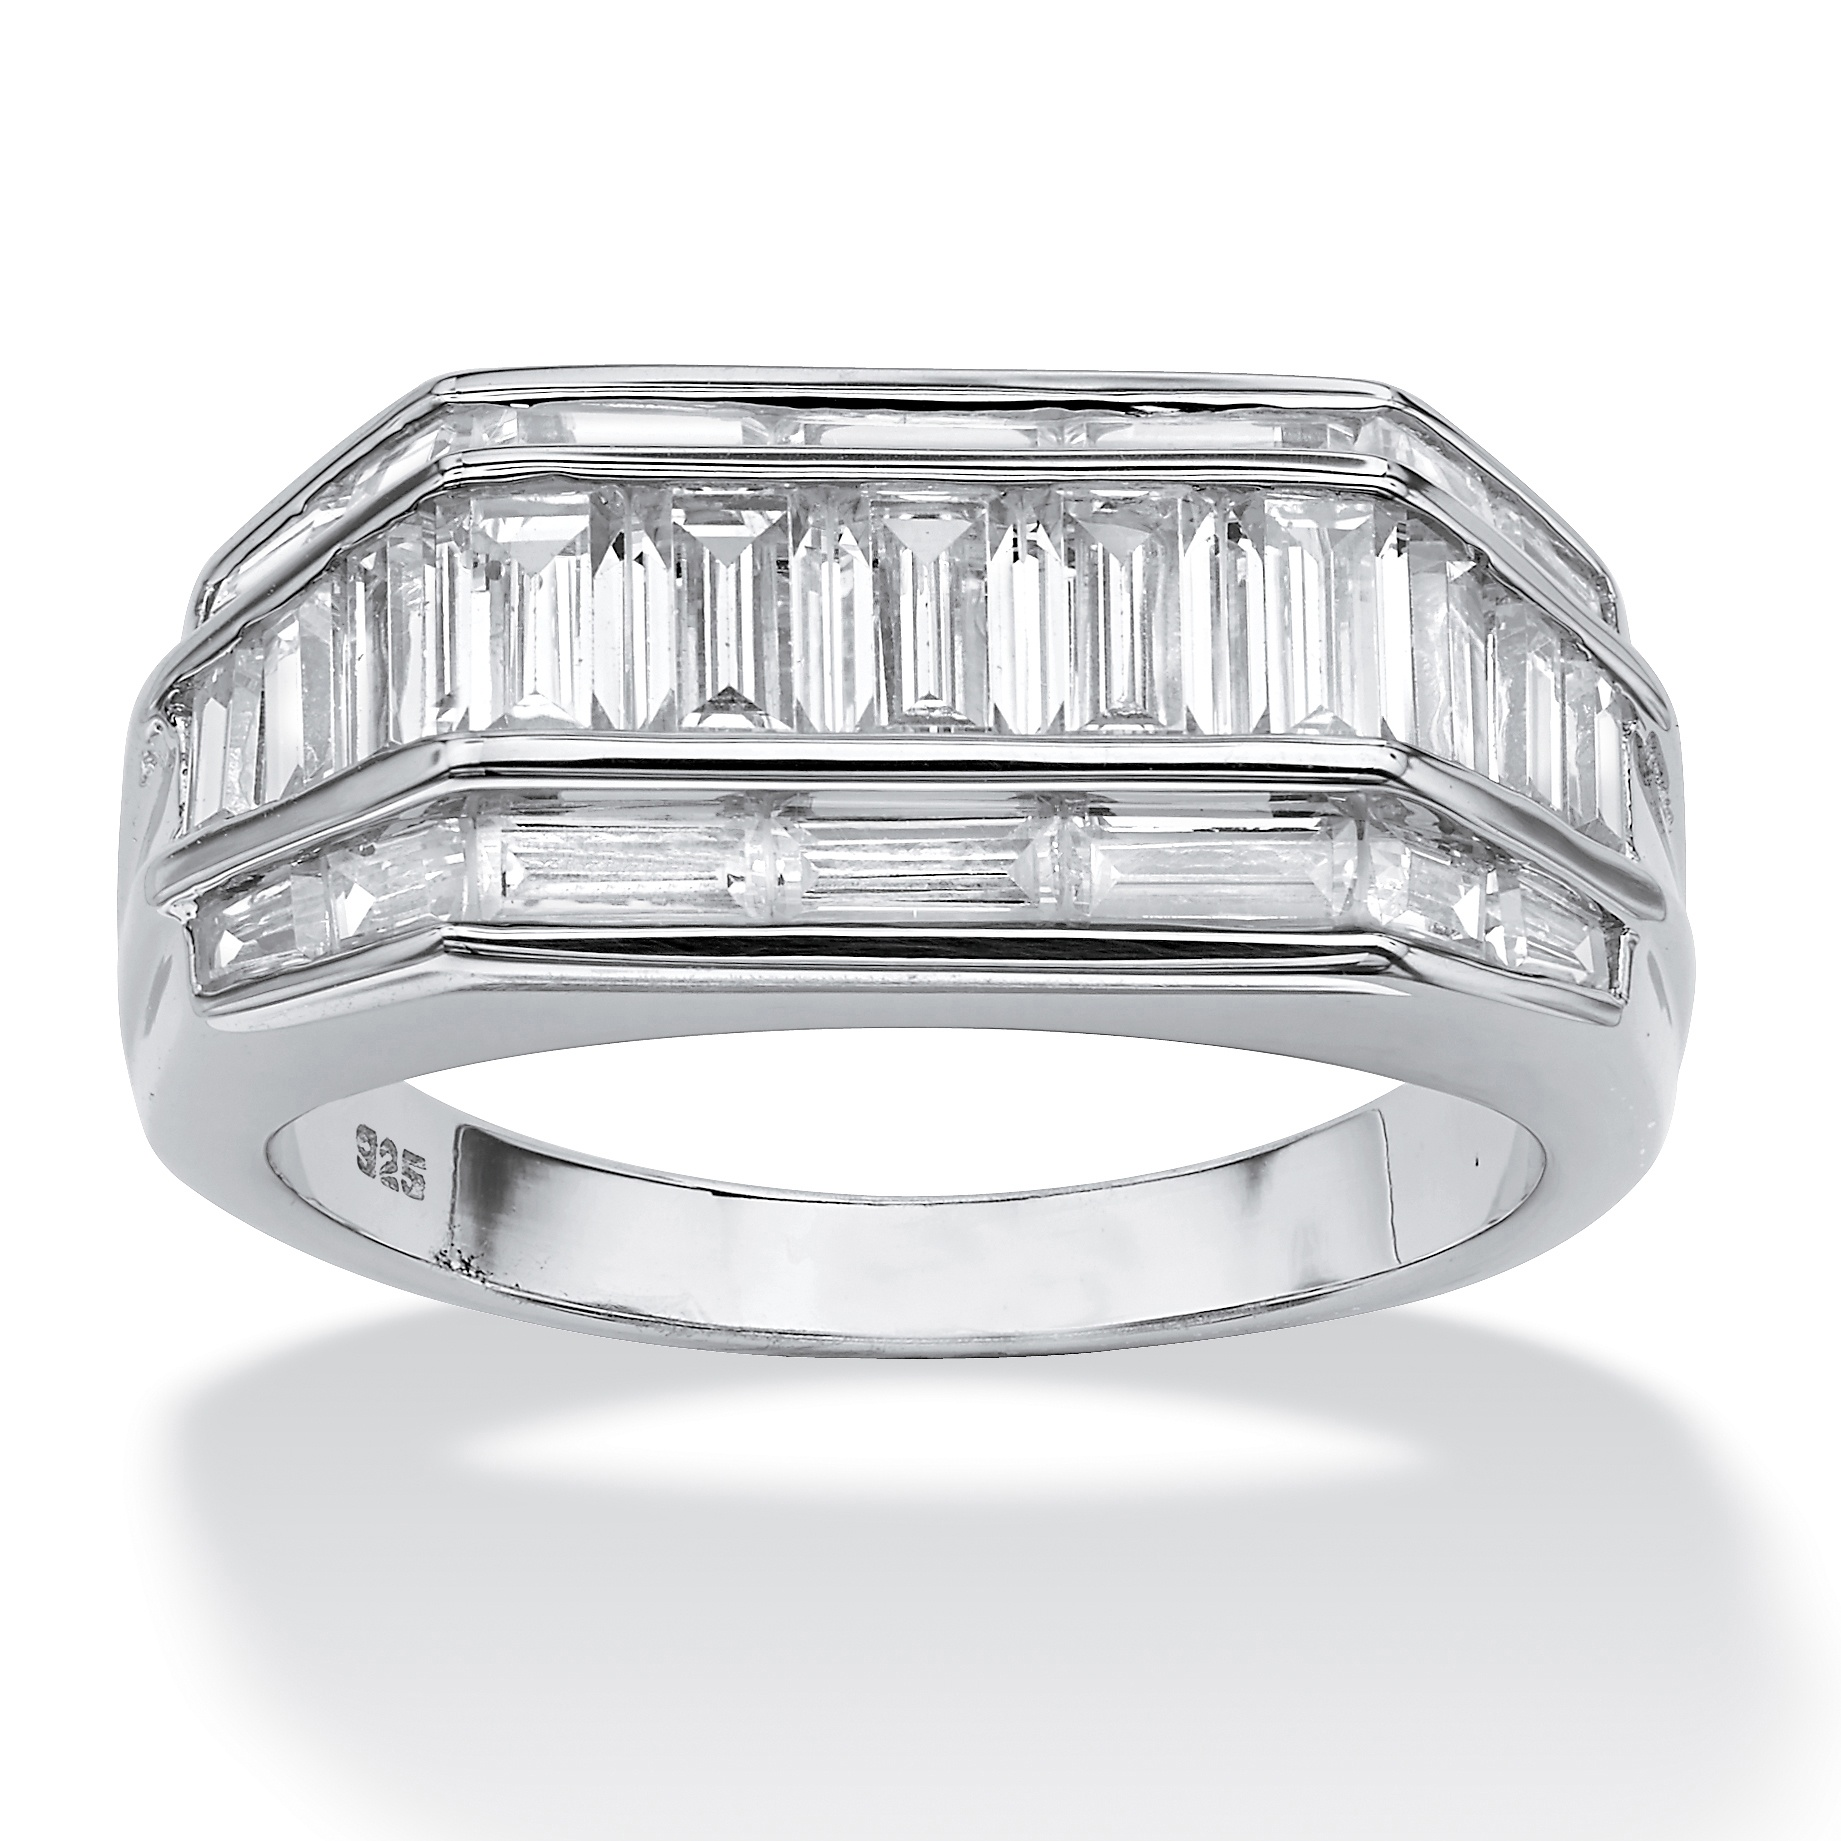 Men's 3.82 TCW Baguette Cut Cubic Zirconia Platinum over Sterling Silver Classic Ring by PalmBeach Jewelry